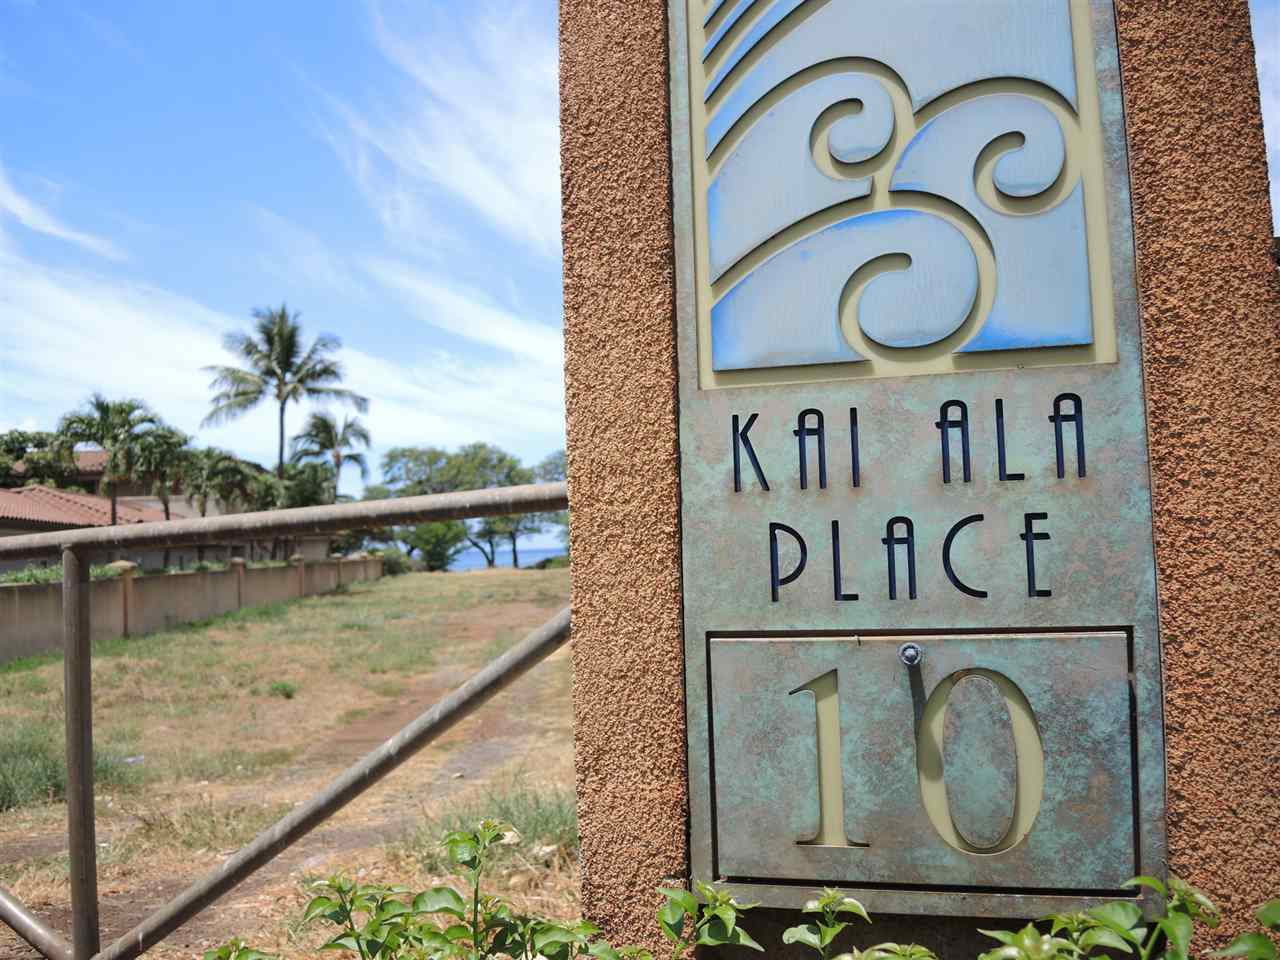 10 KAI ALA Dr in Kaanapali Resort